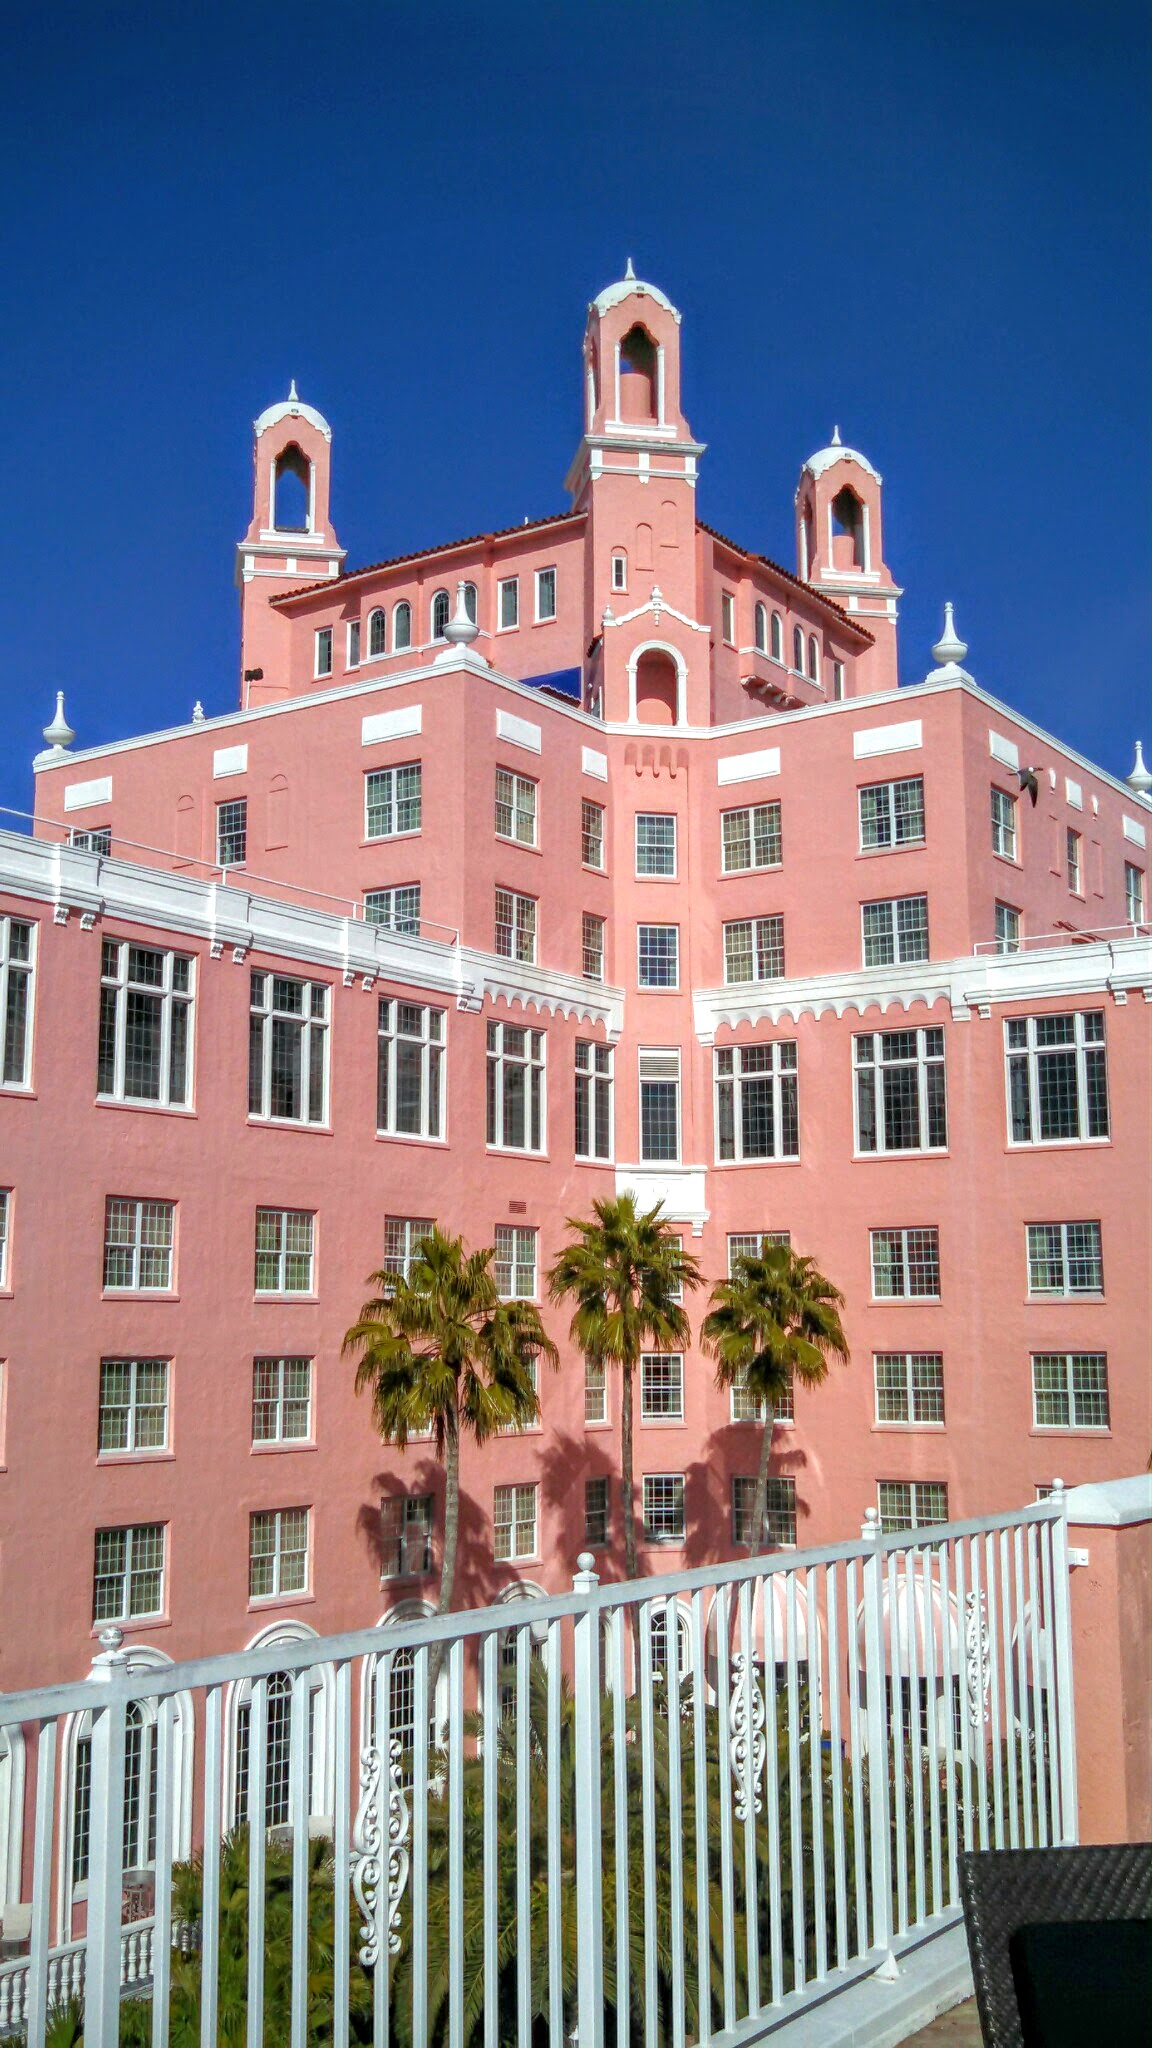 The Pink Palace Proposal | House Full of Summer - A romantic beach proposal at the Don CeSar on St. Pete Beach, Florida,  sand sculpture proposal, beach engagement, sunset proposal on the beach, pink building, palm beach style, wedding venue, the knot,